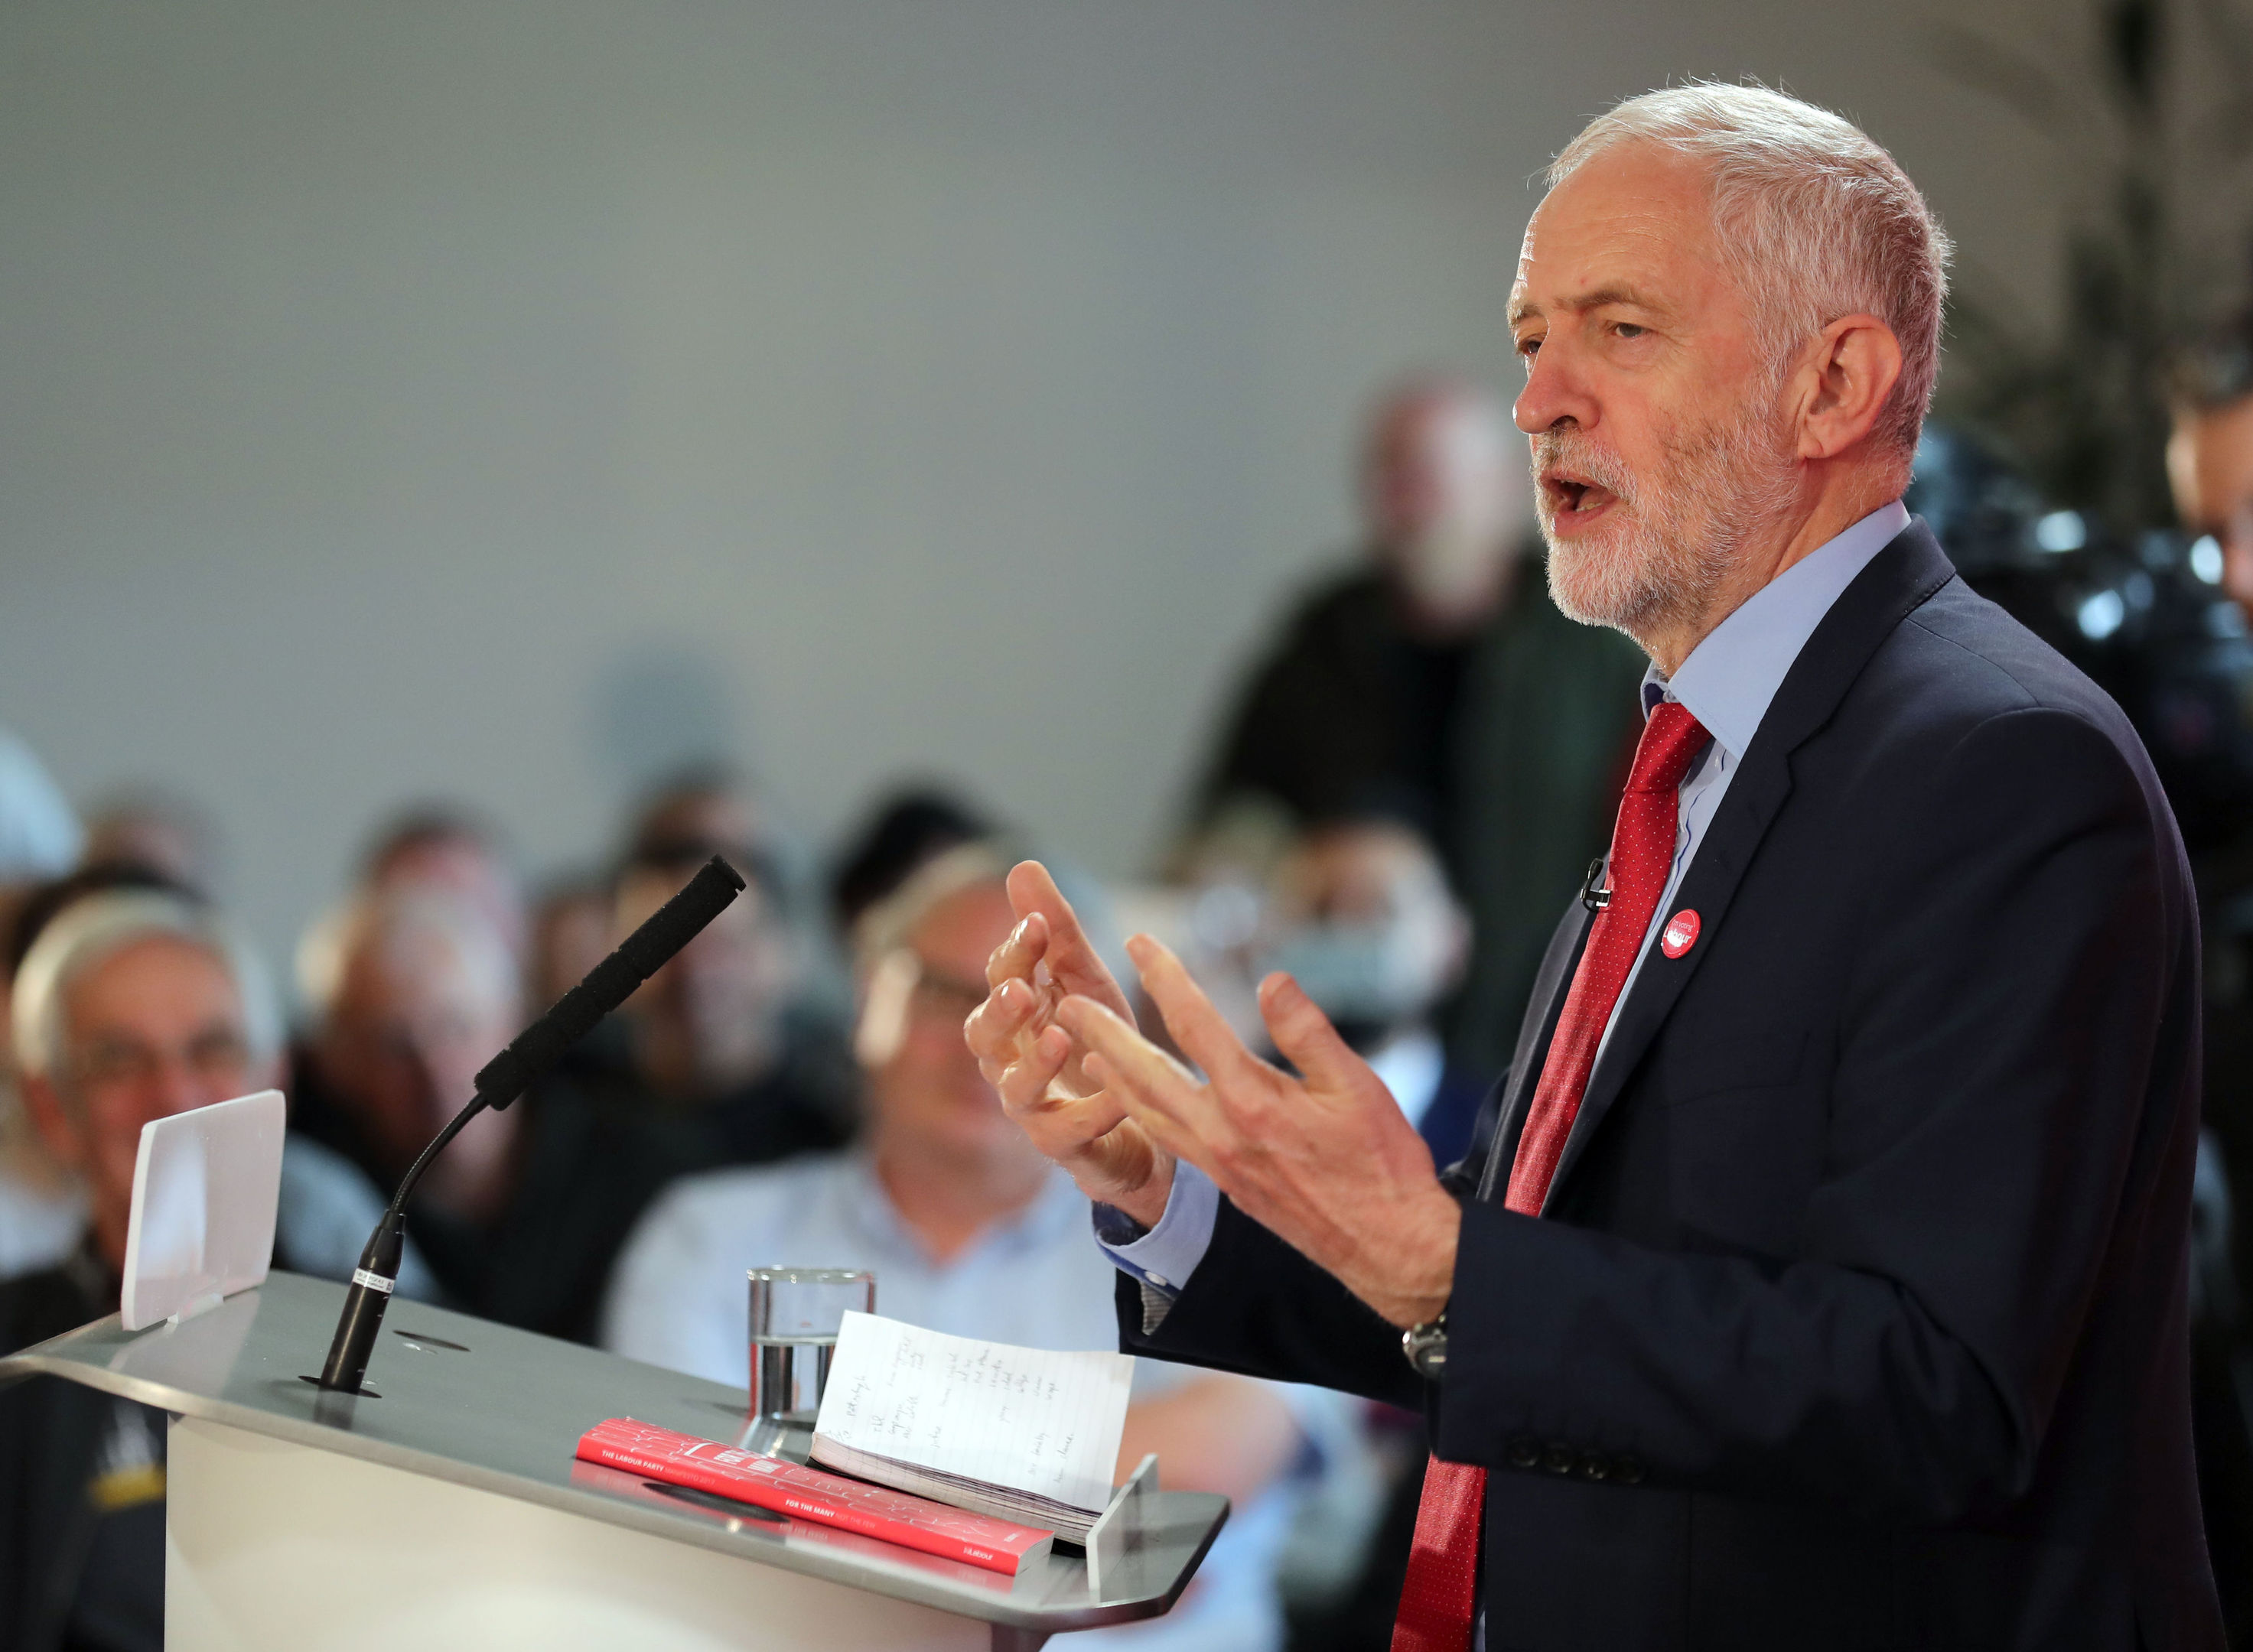 Labour leader Jeremy Corbyn speaks during an election campaign visit to Peterborough United Football Club. (Chris Radburn/PA Wire)